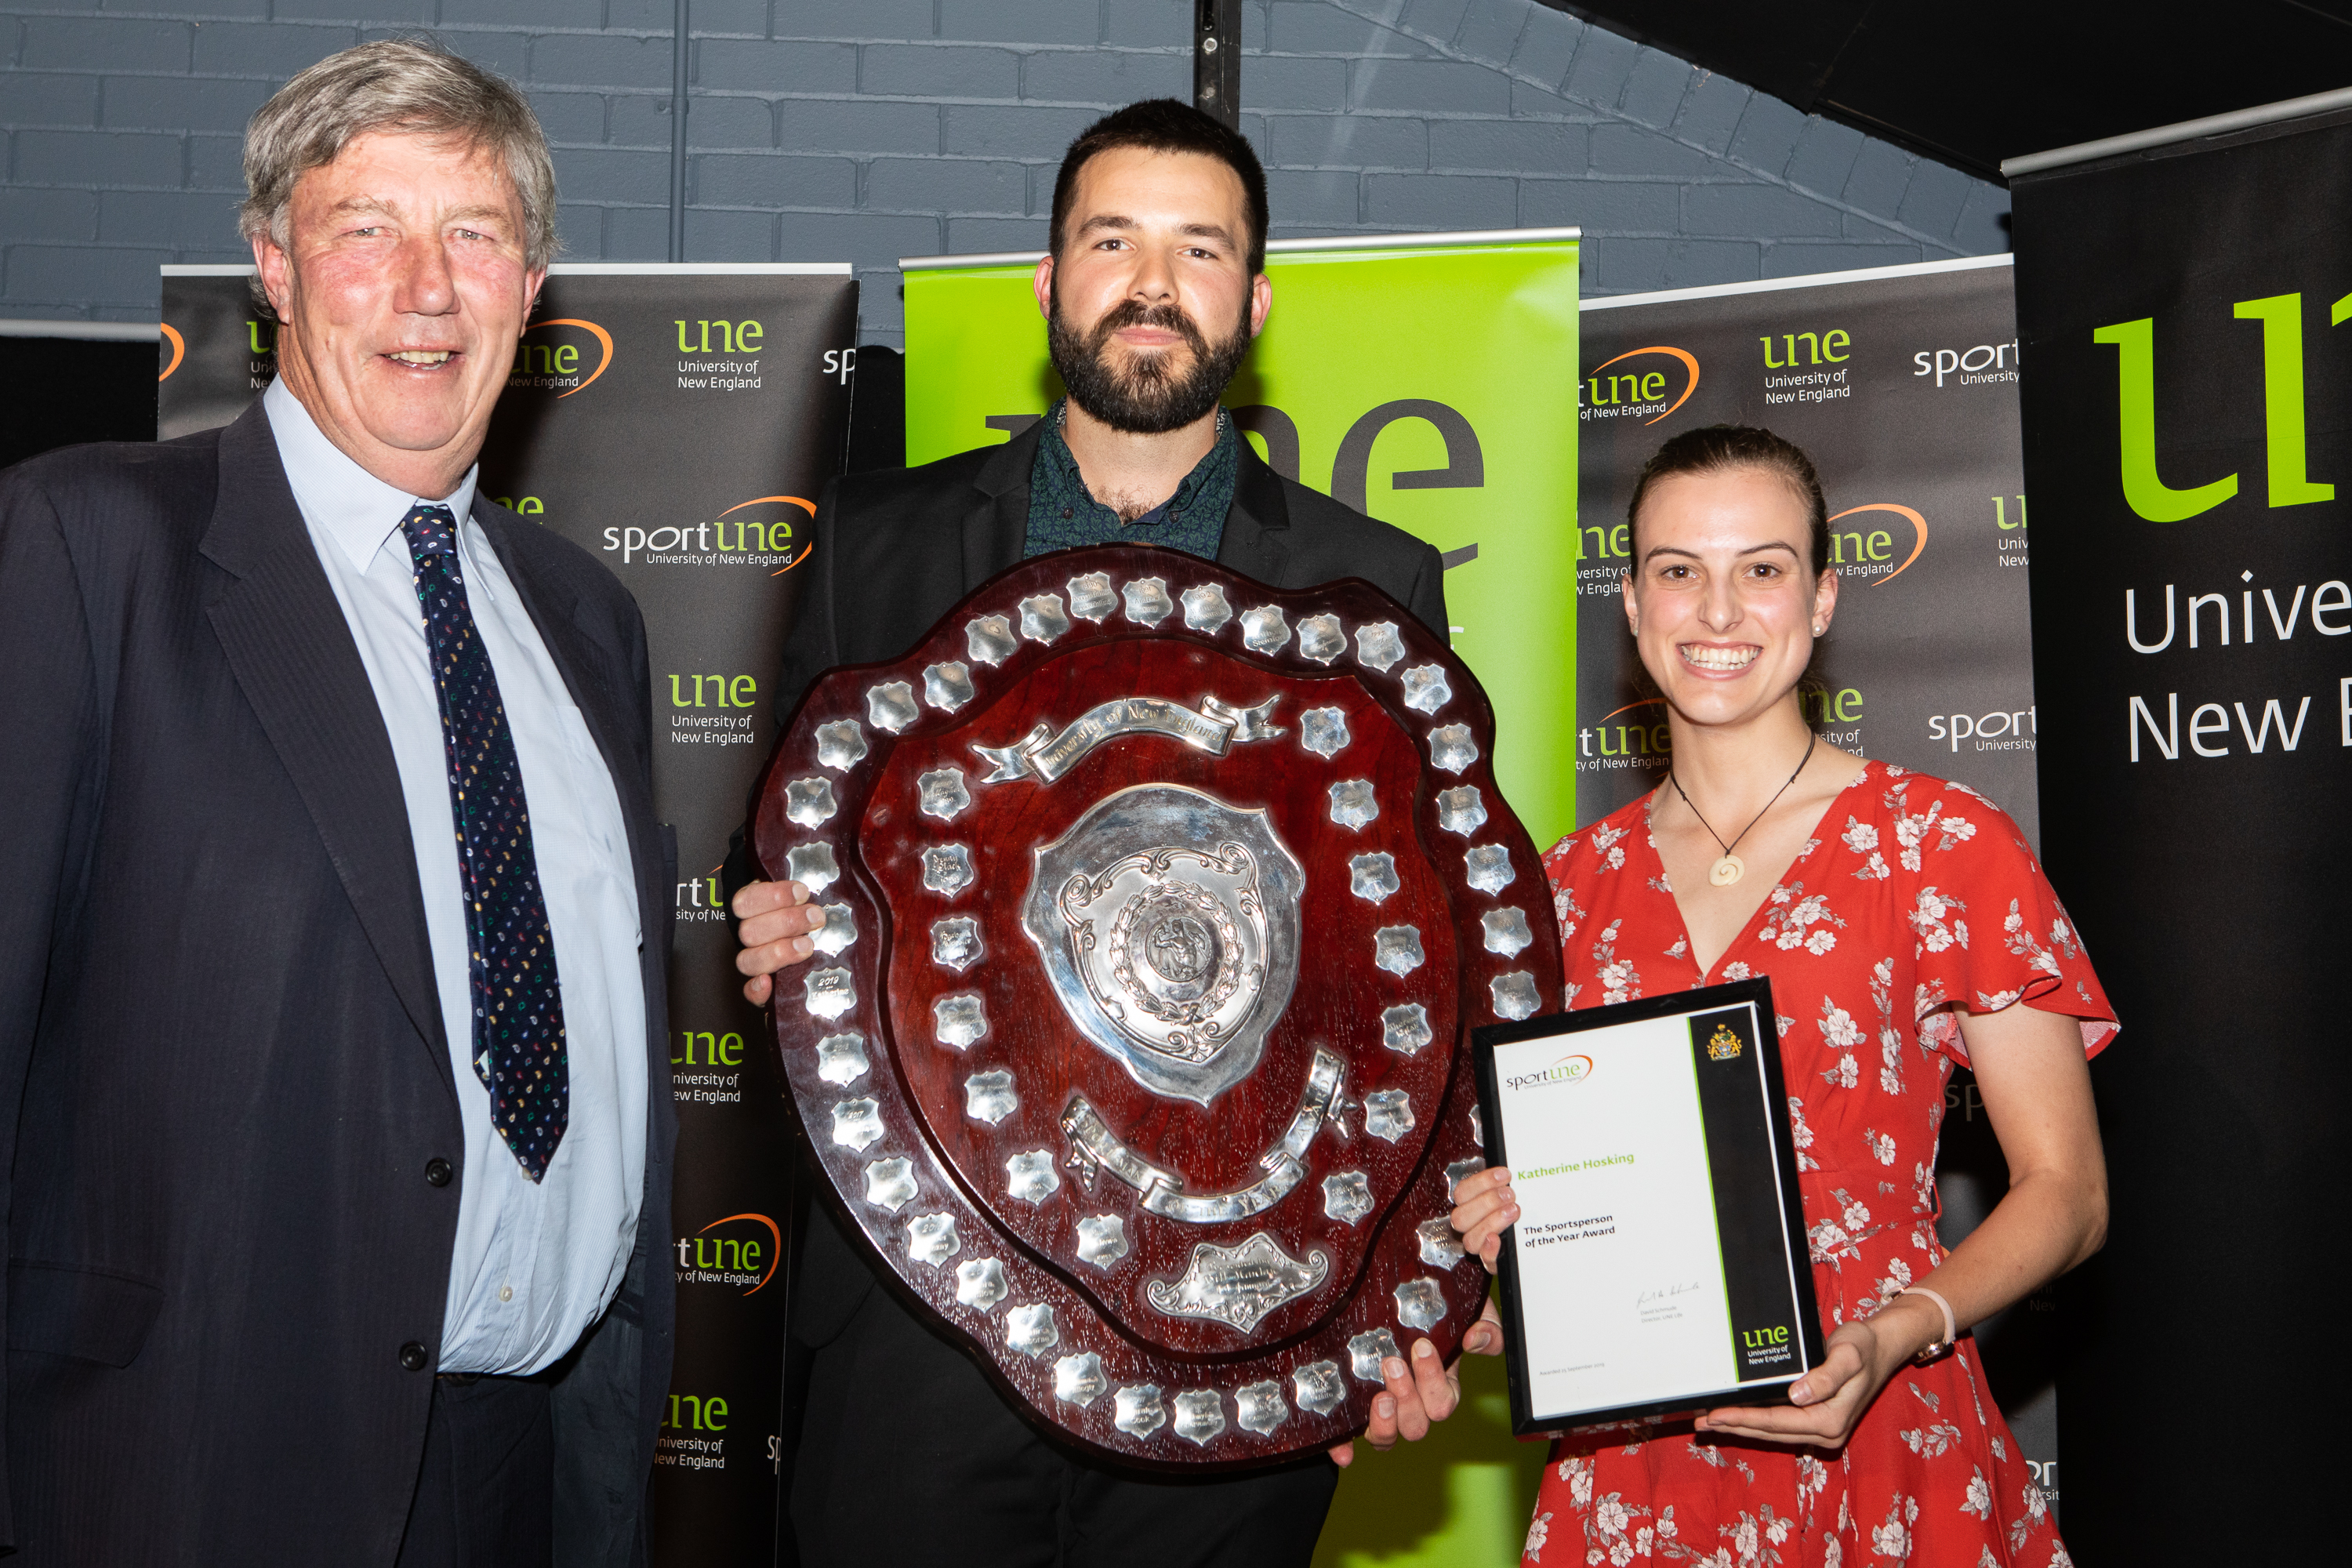 UNE Sport Awards 2019 Katherine Hosking Sports Person of the Year